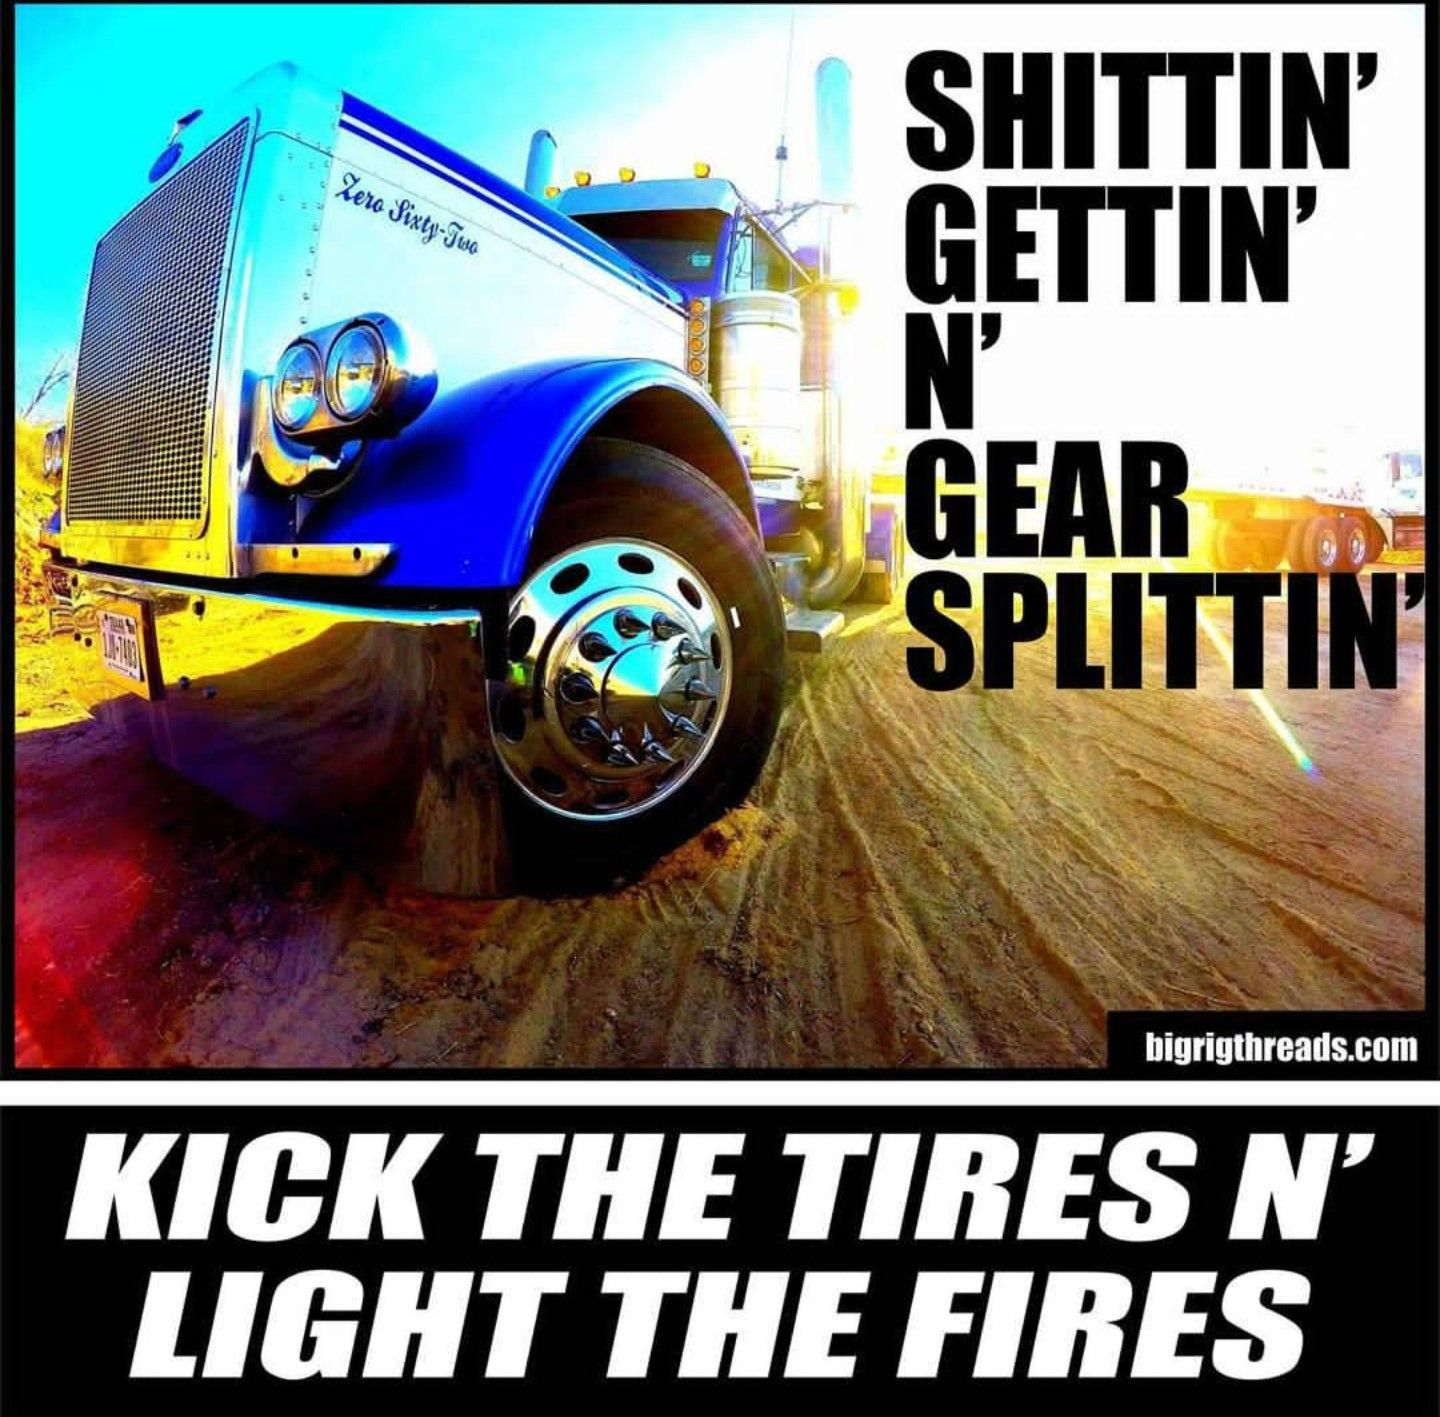 Truck Quotes Pinhi On Trucks  Pinterest  Peterbilt Tractor And Semi Trucks